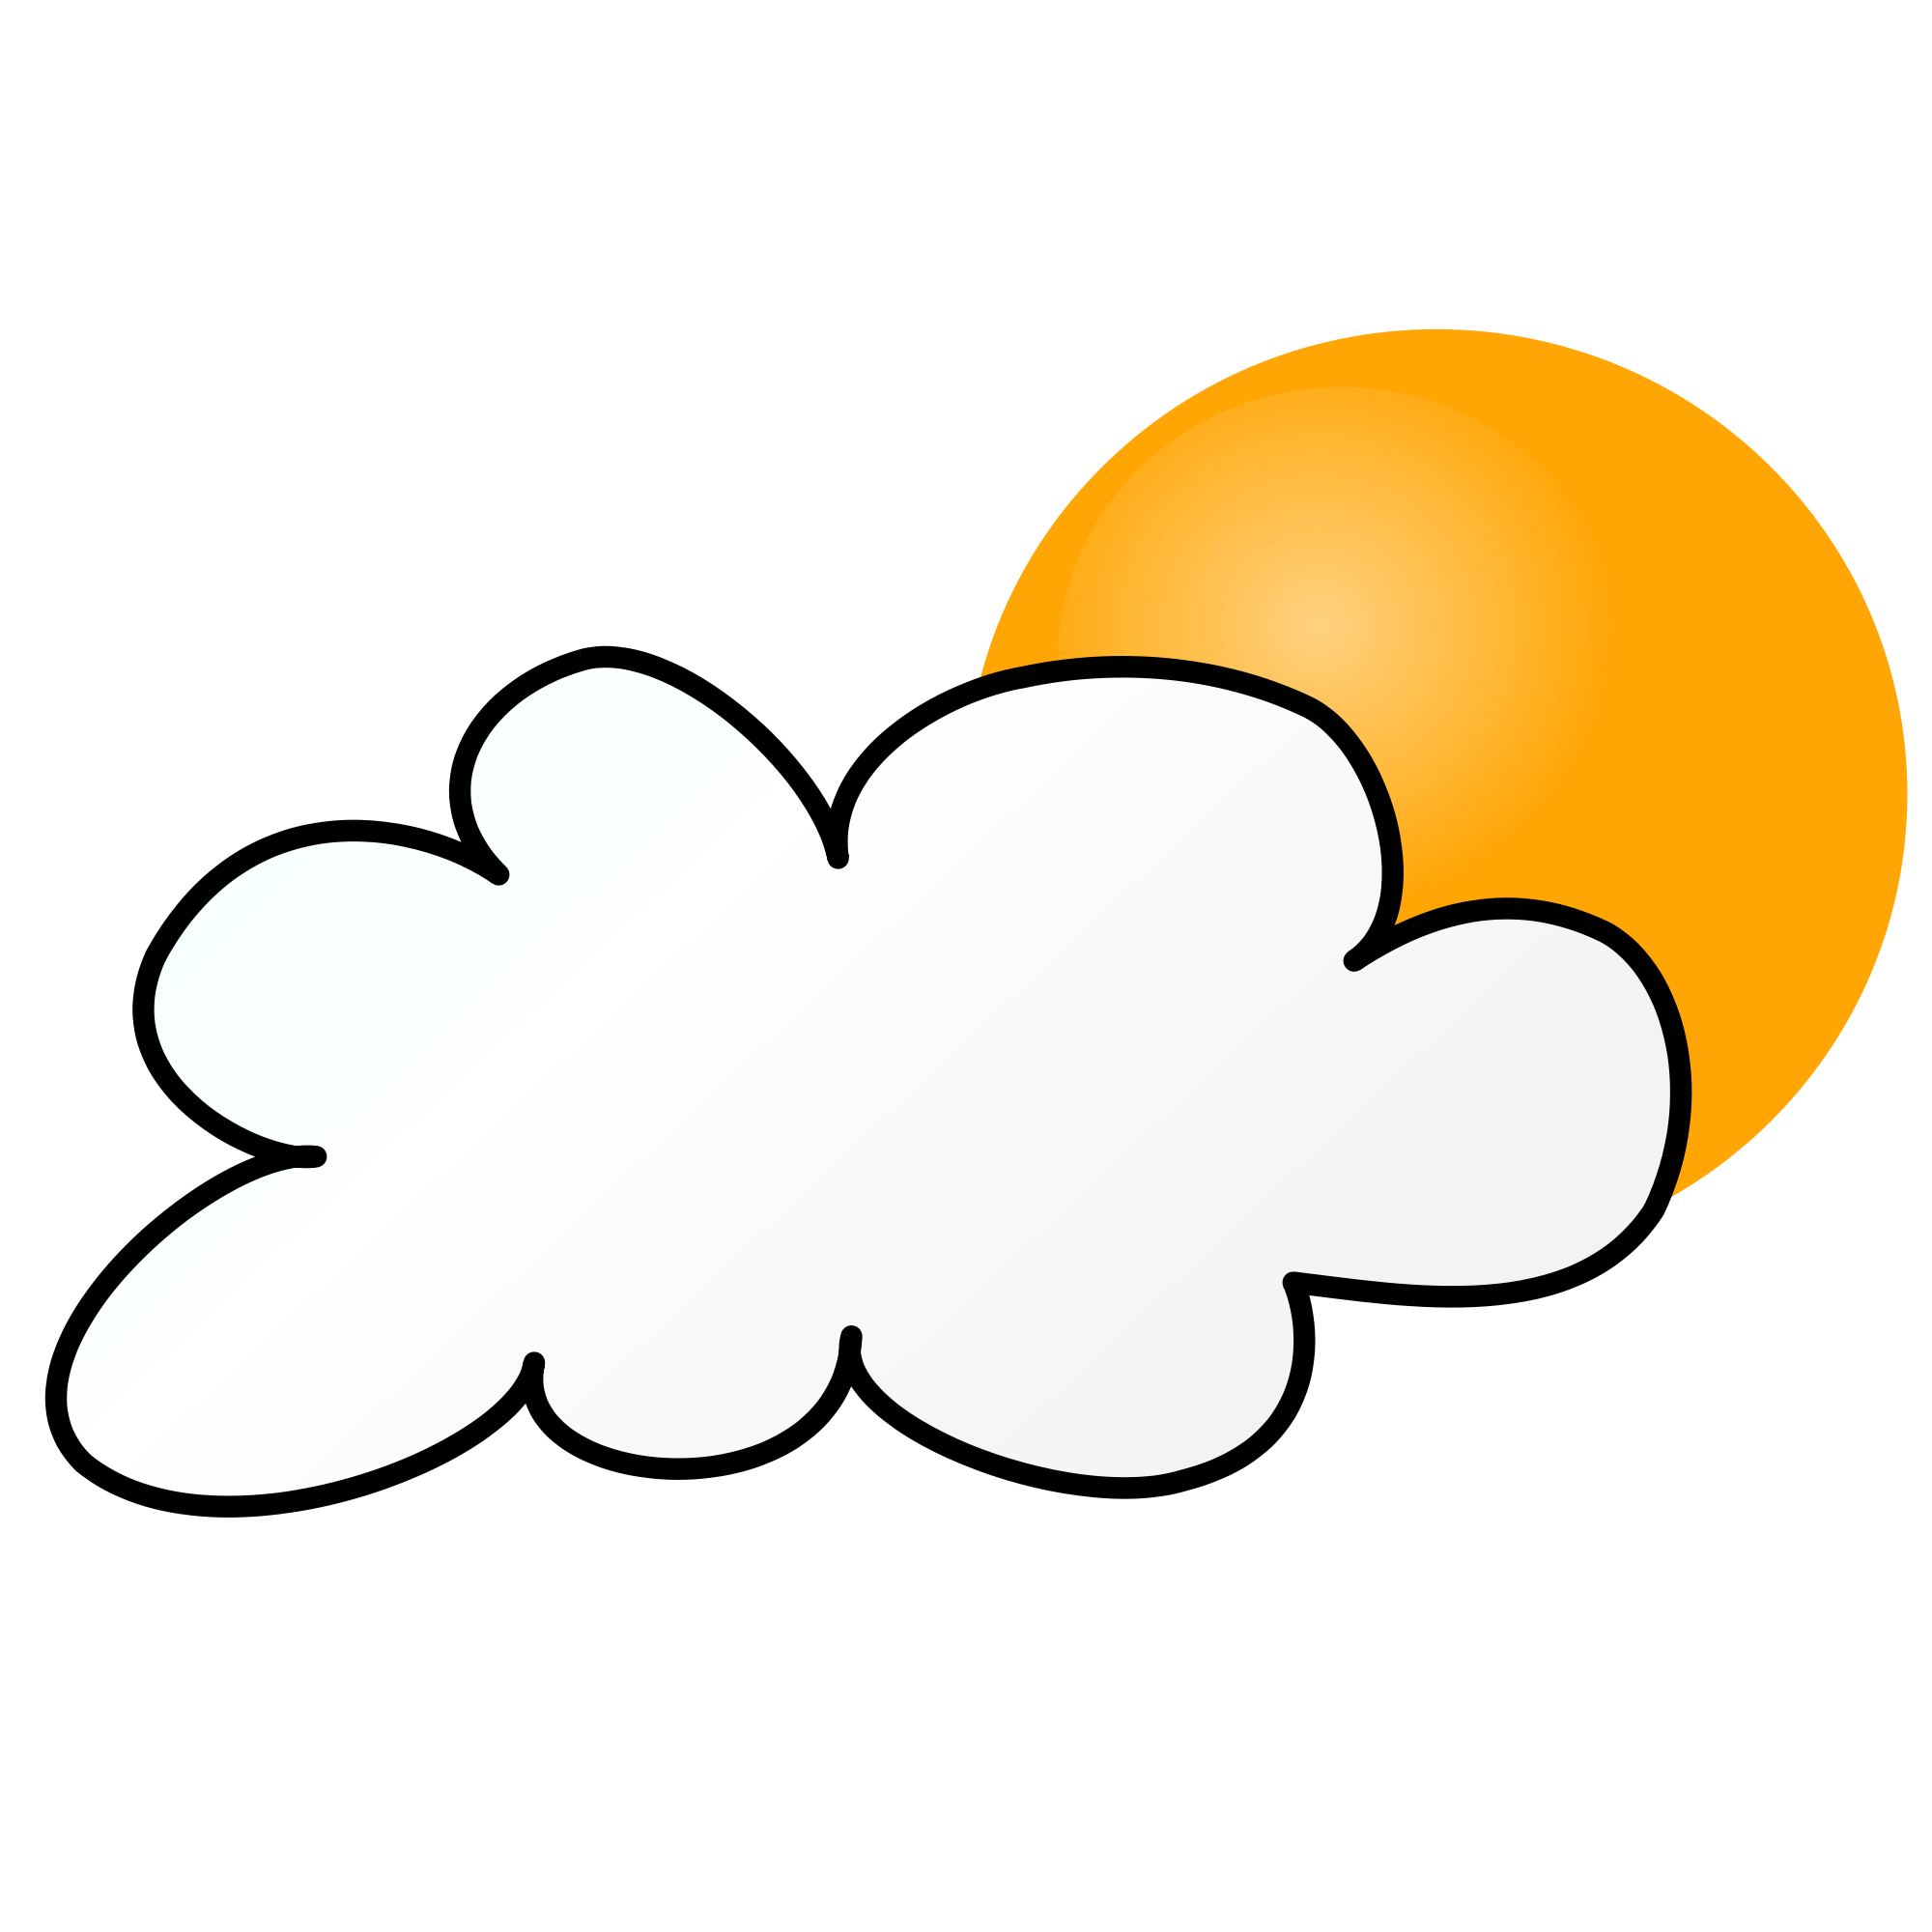 Cloudy clipart fine weather. File svg wikimedia commons